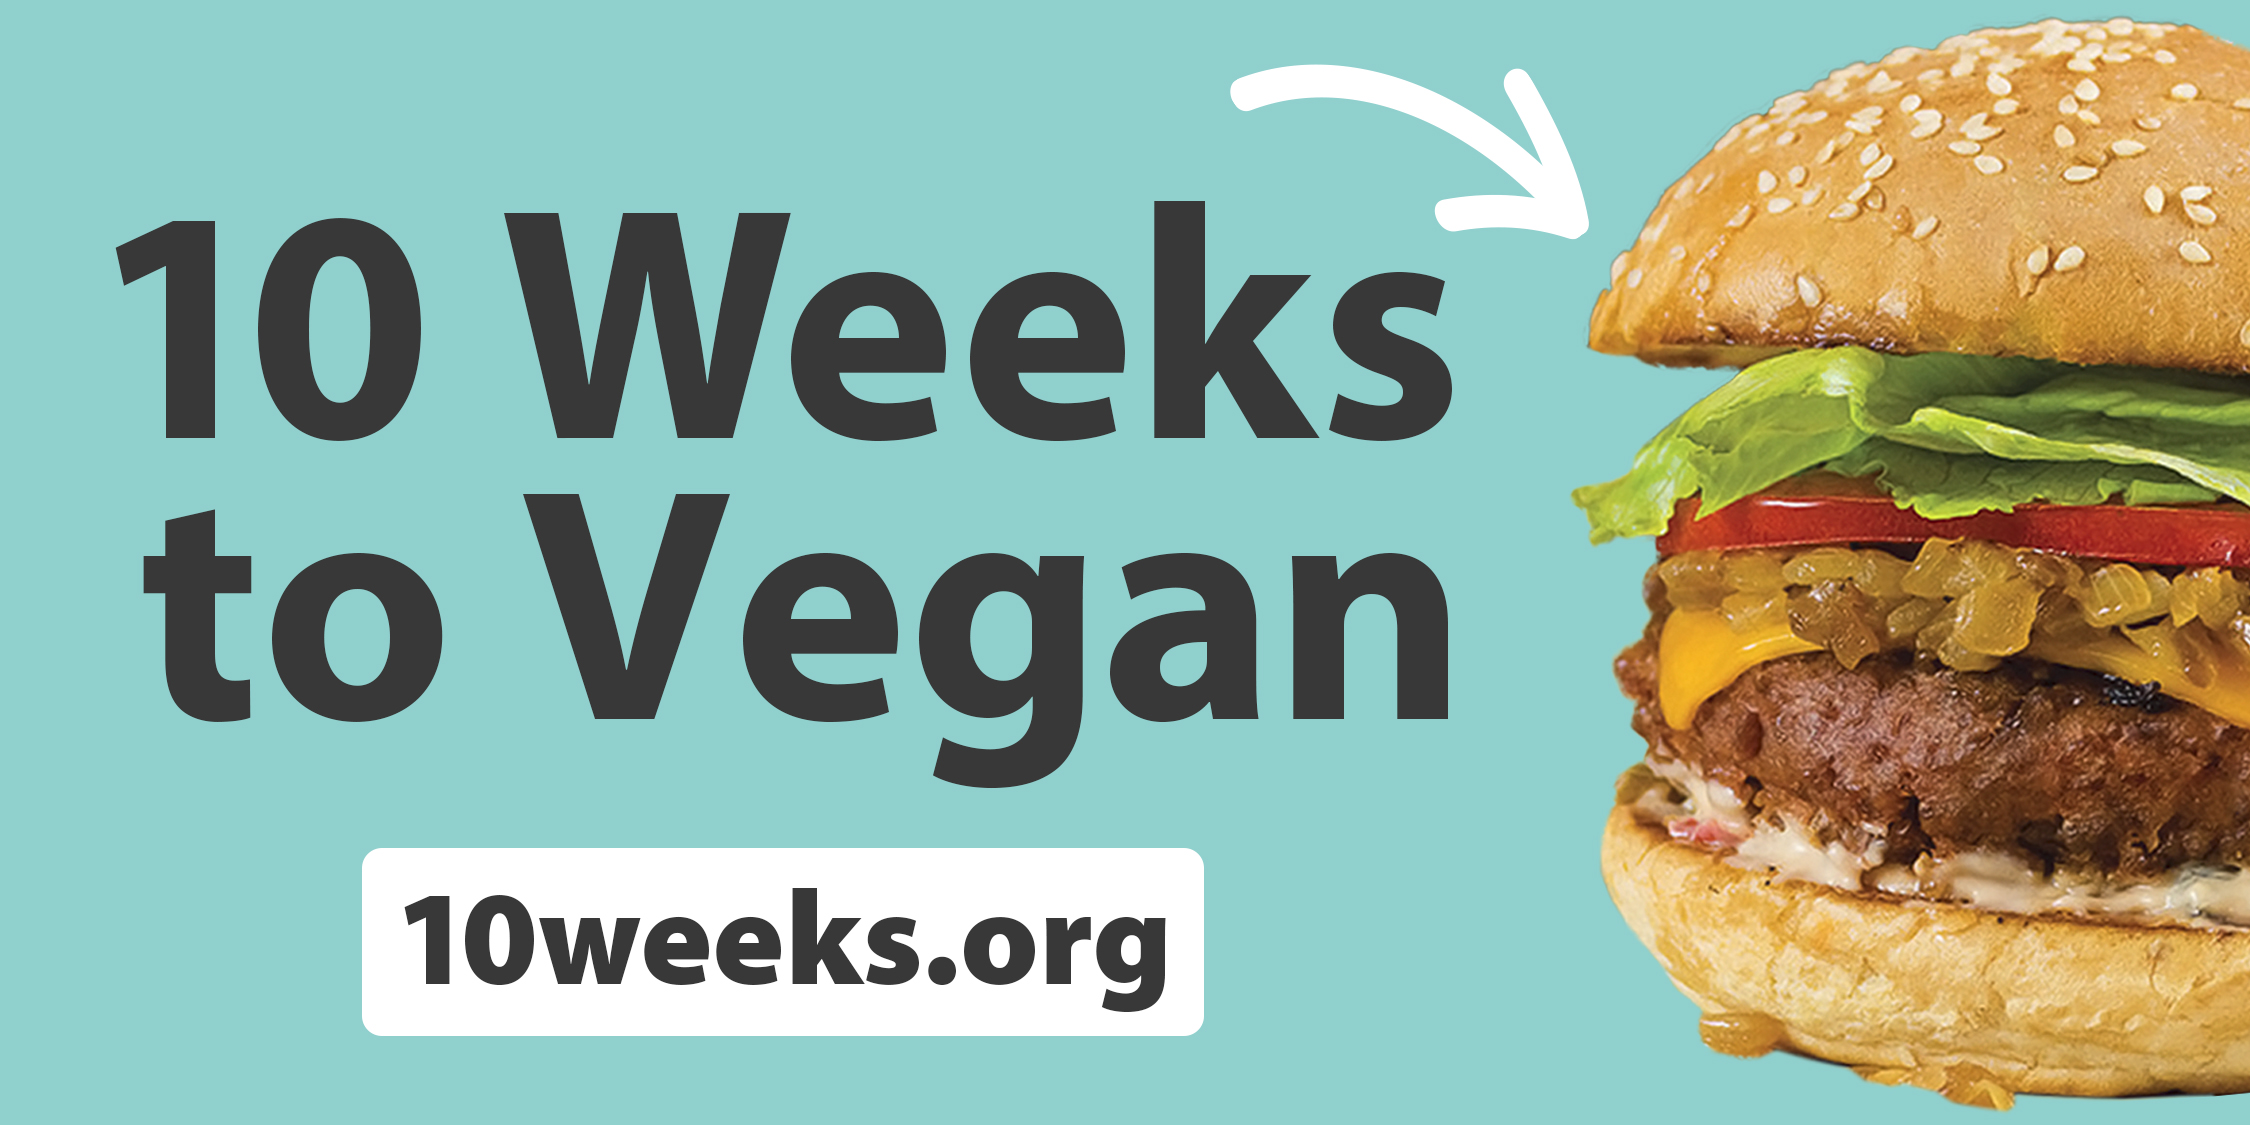 Bumper Sticker – 10 Weeks to Vegan w/ URL